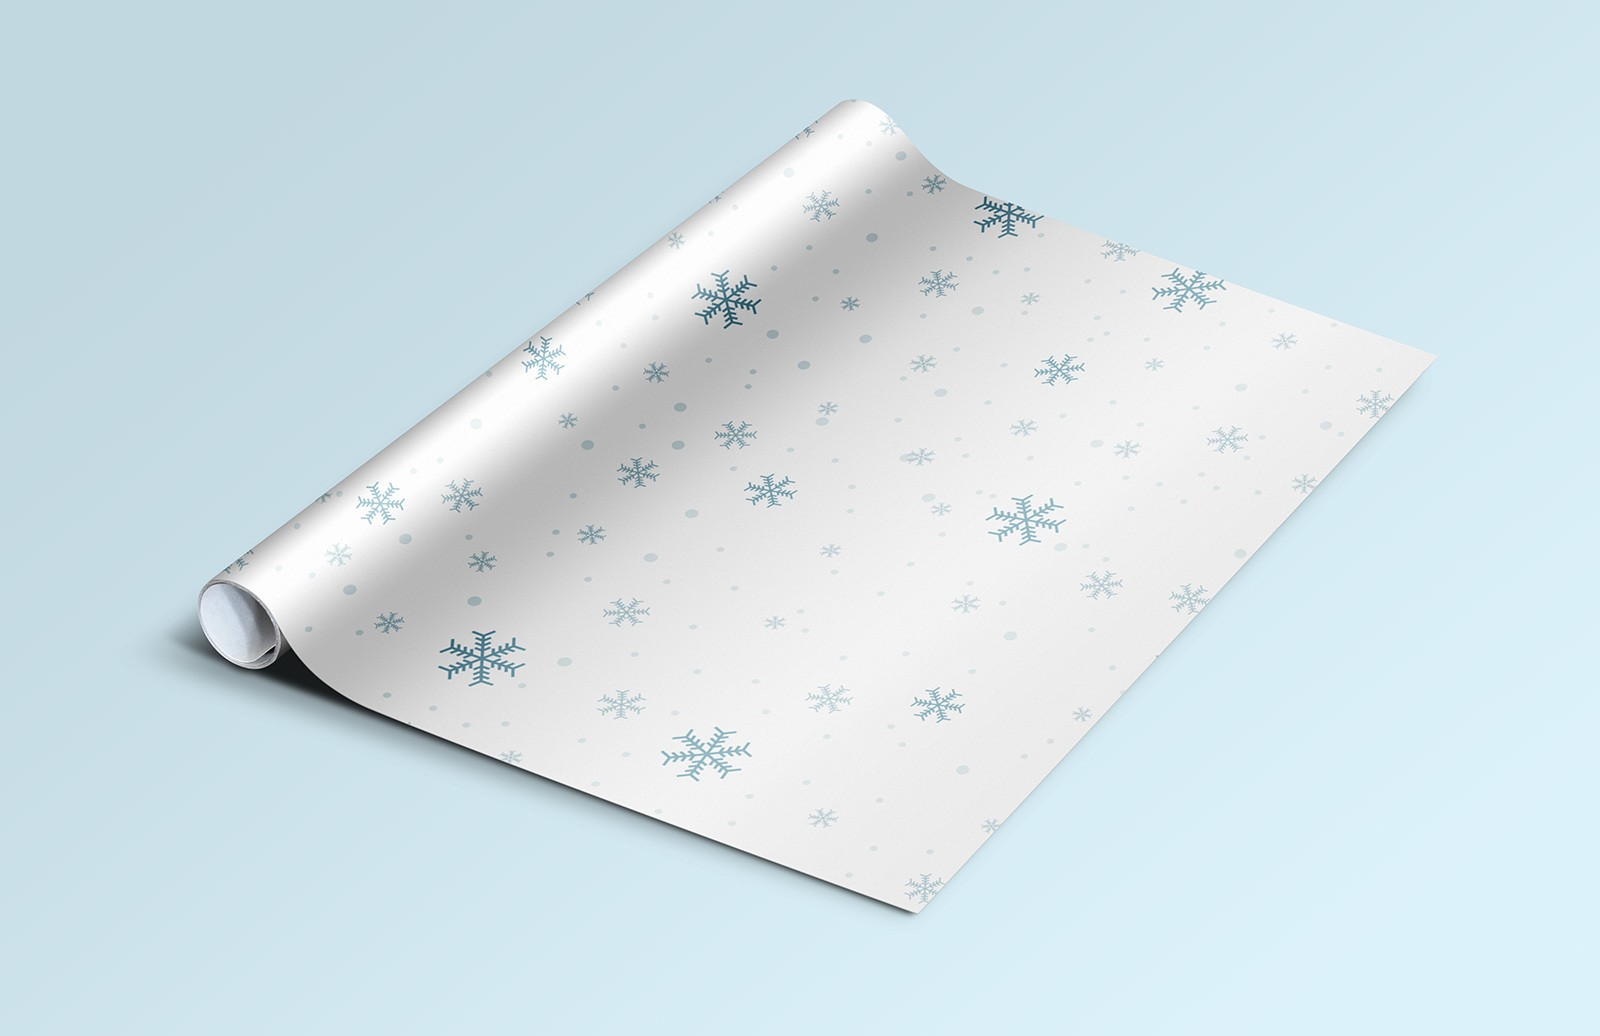 Wrapping Paper Mockup Preview 1